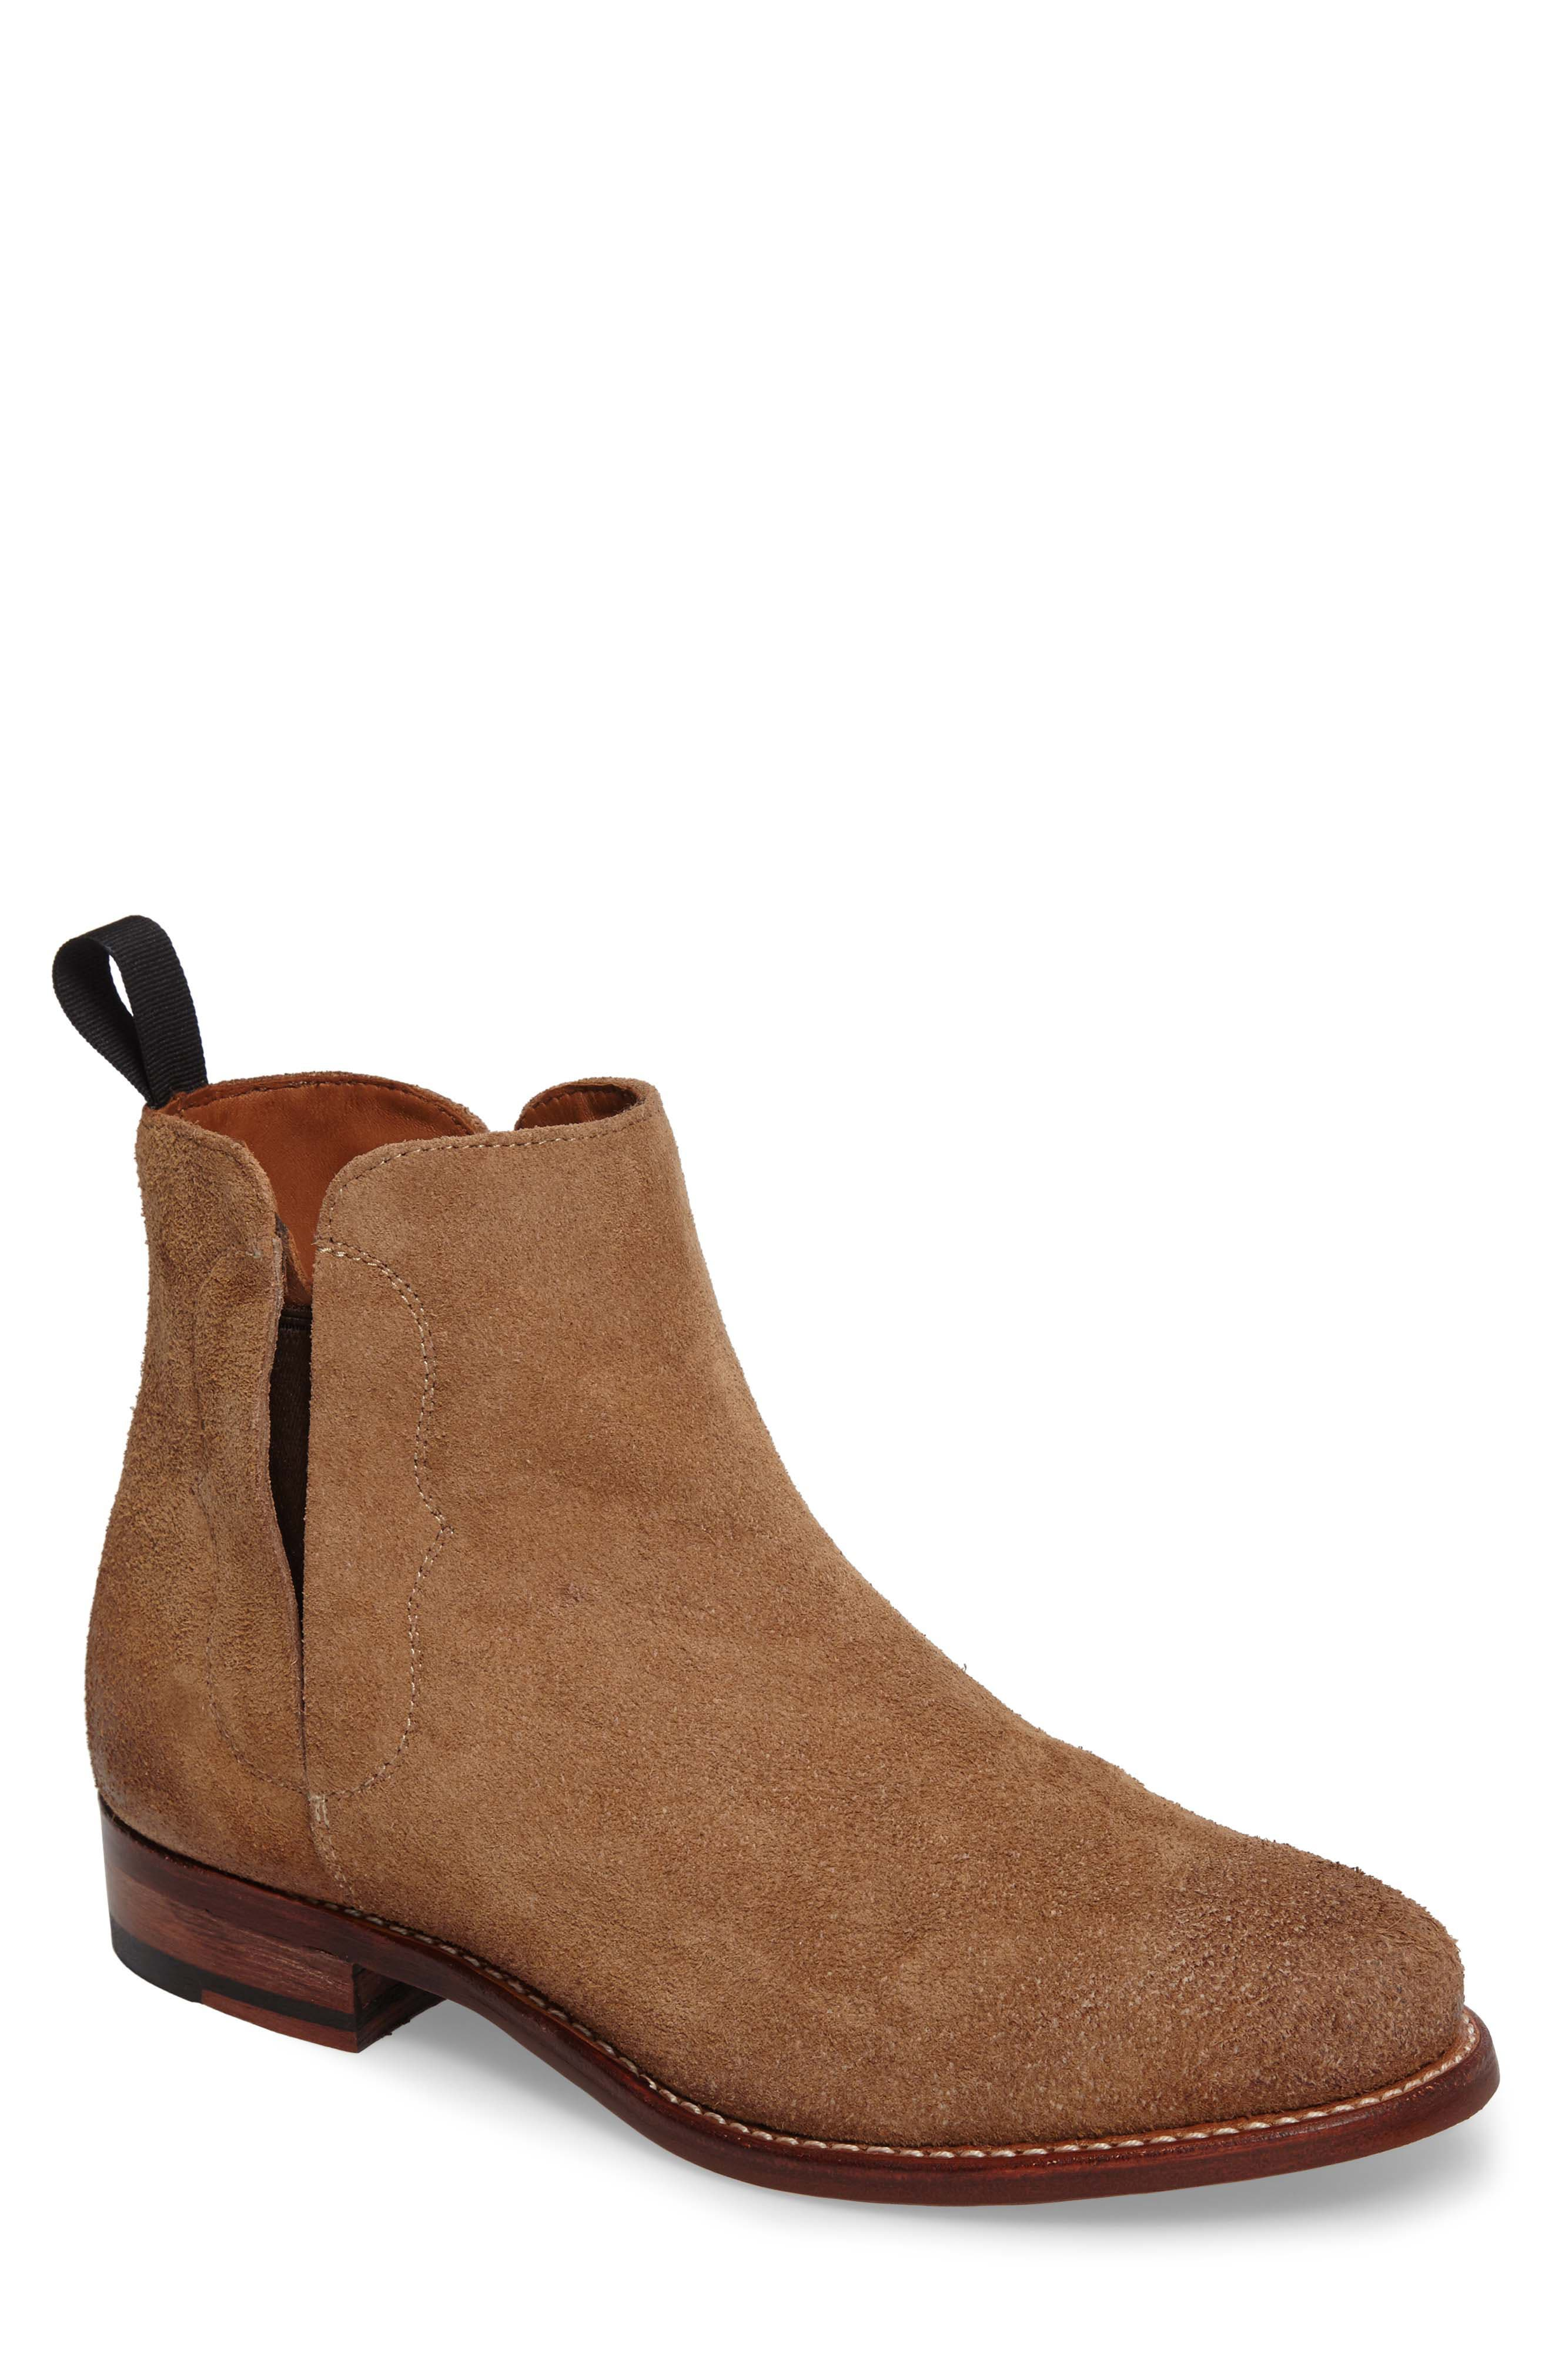 Ariat Maxwell Chelsea Boot,                         Main,                         color,